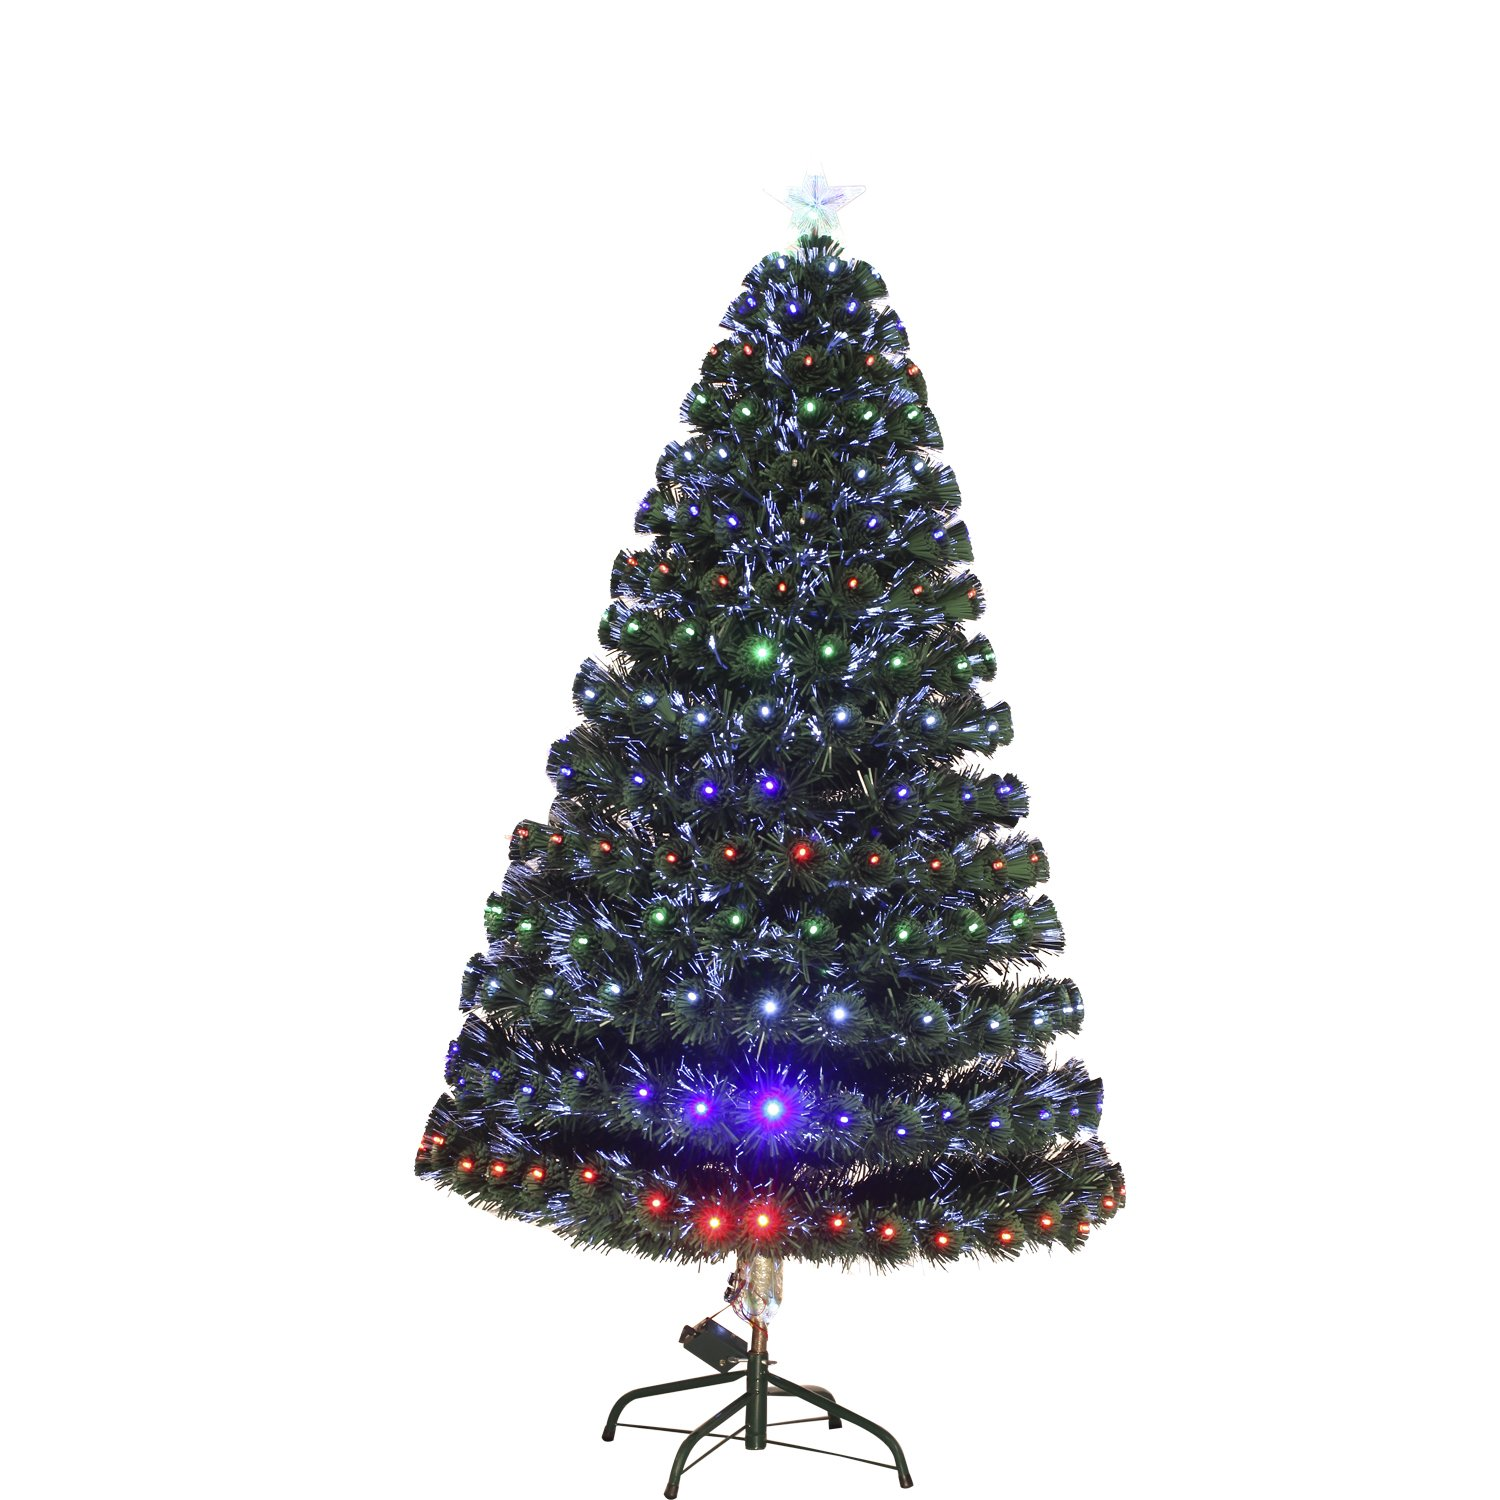 5ft Green Fibre Optic Christmas Tree Rainforest Islands Ferry Homcom